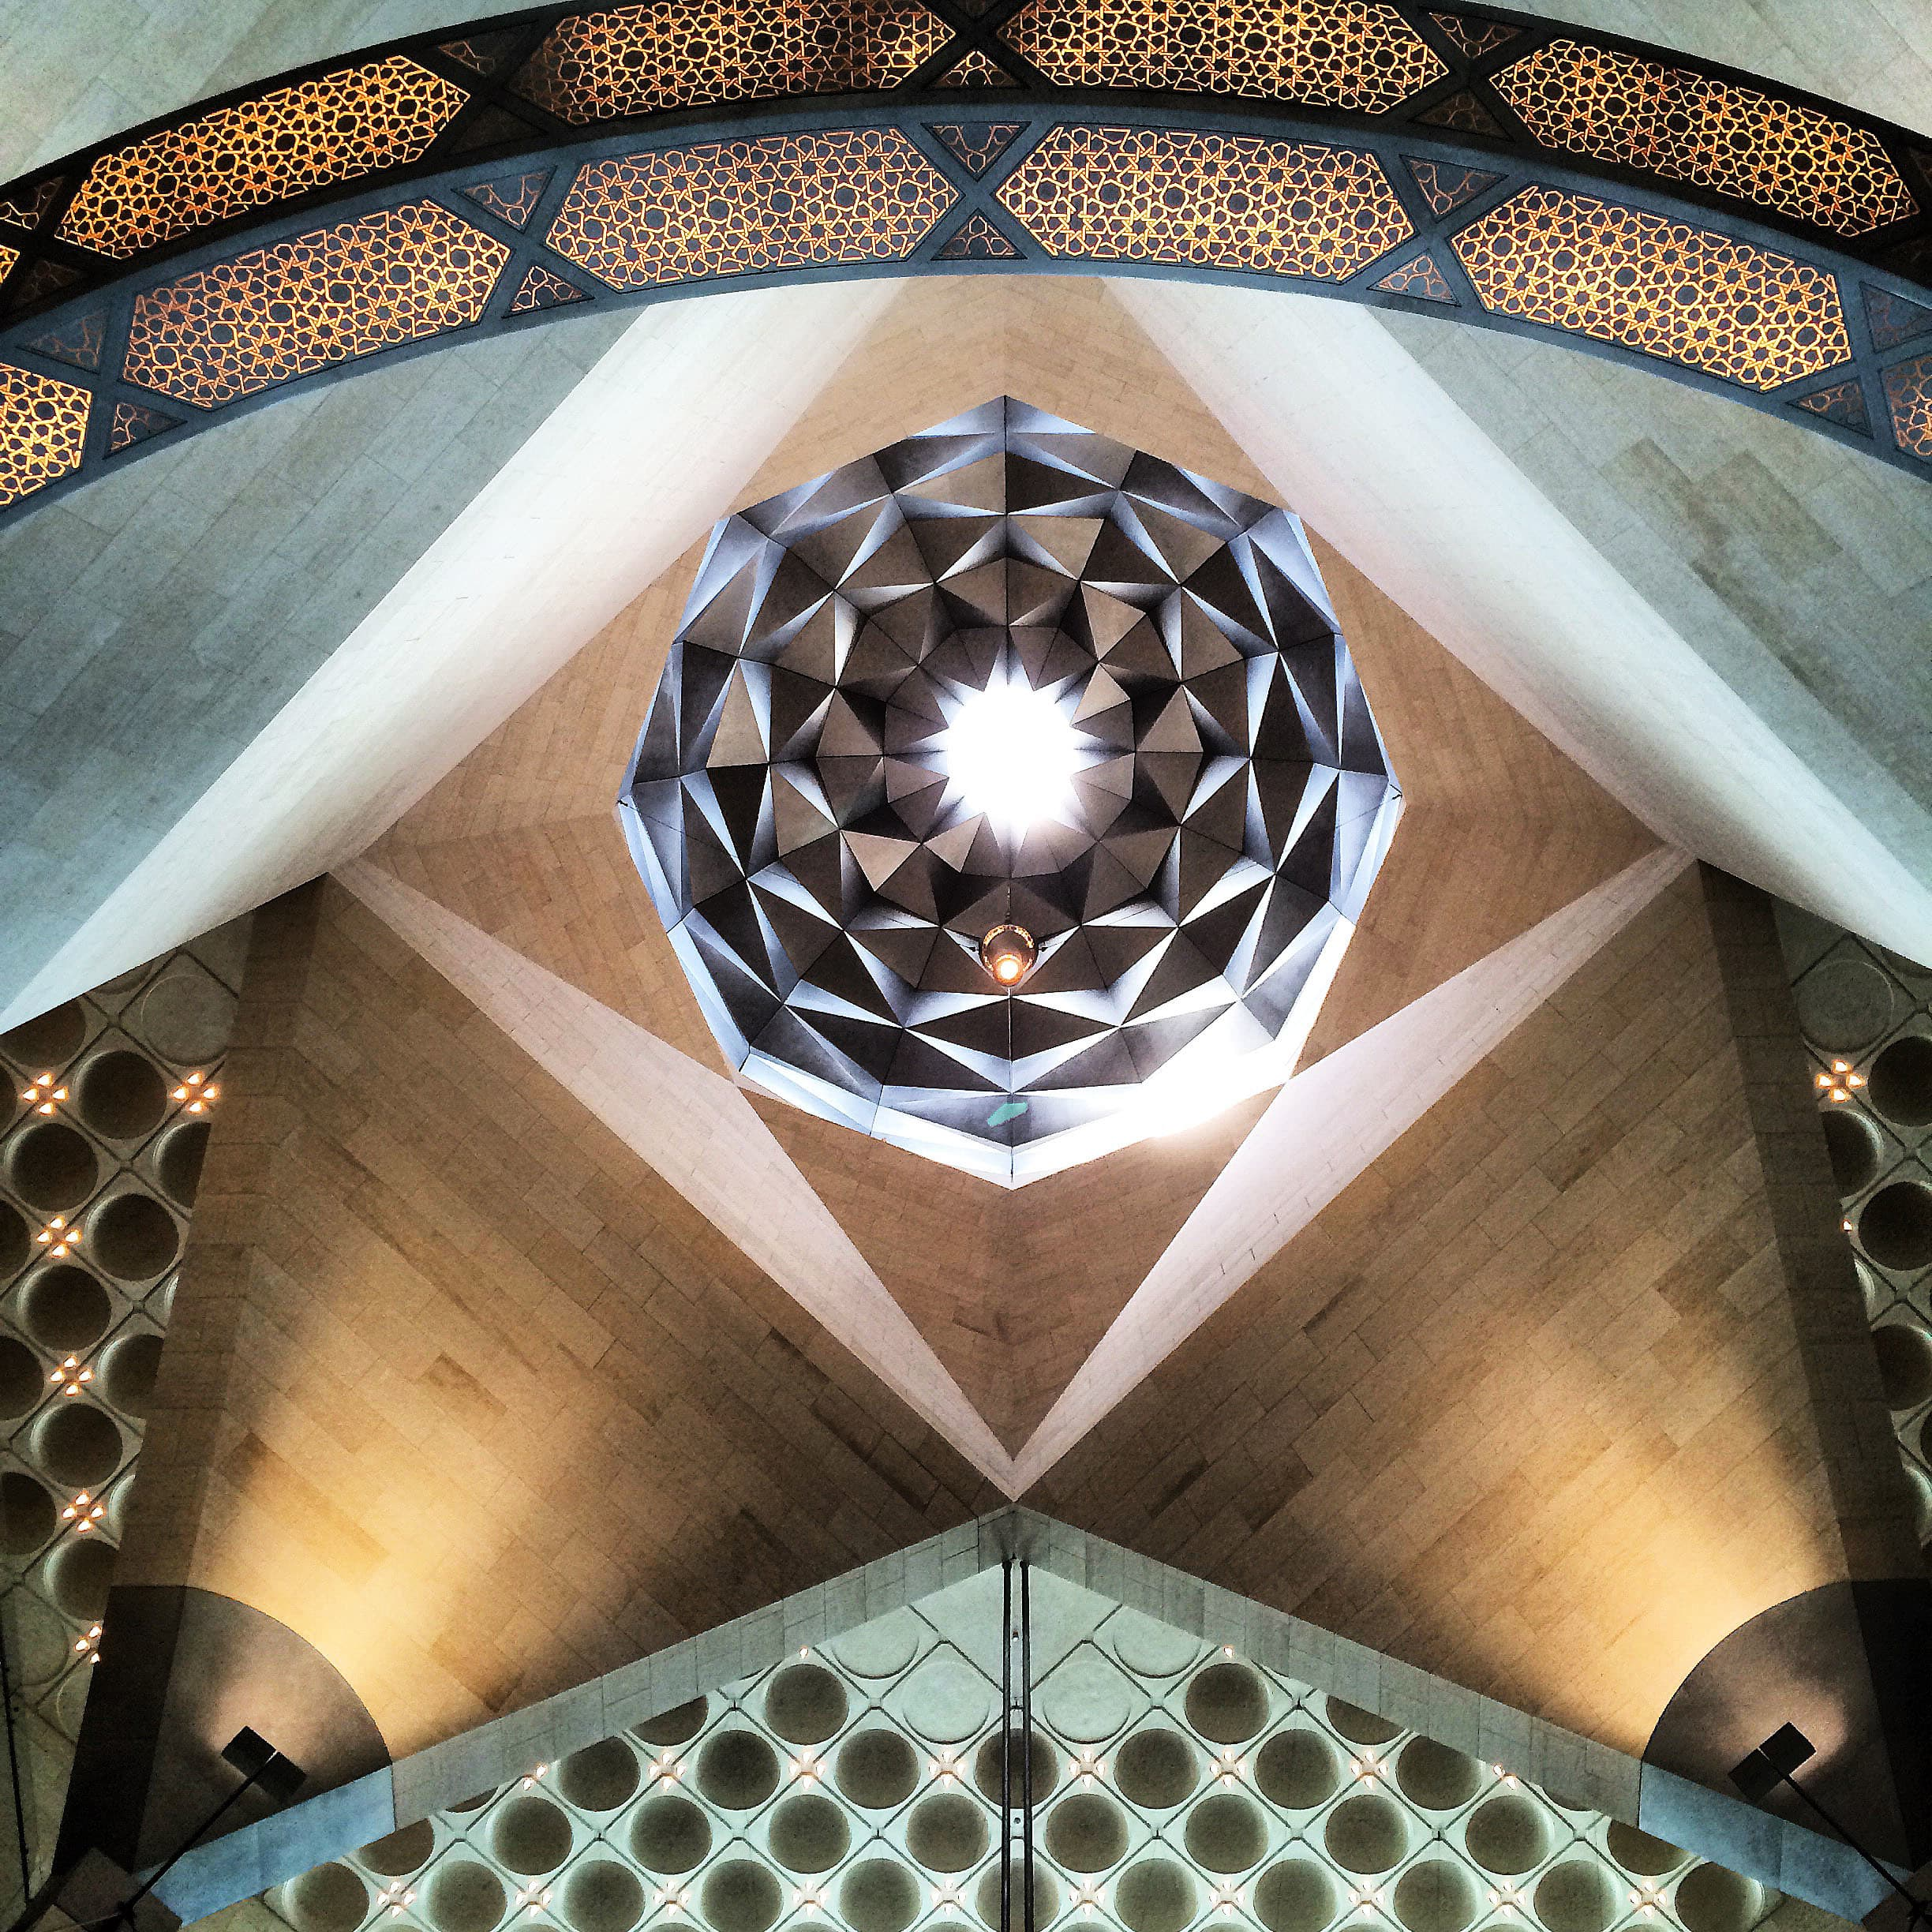 The interior of the museum is as spectacular as its exterior. This here is an oculus at the top of the atrium; it captures and reflects patterned light due to its faceted dome.